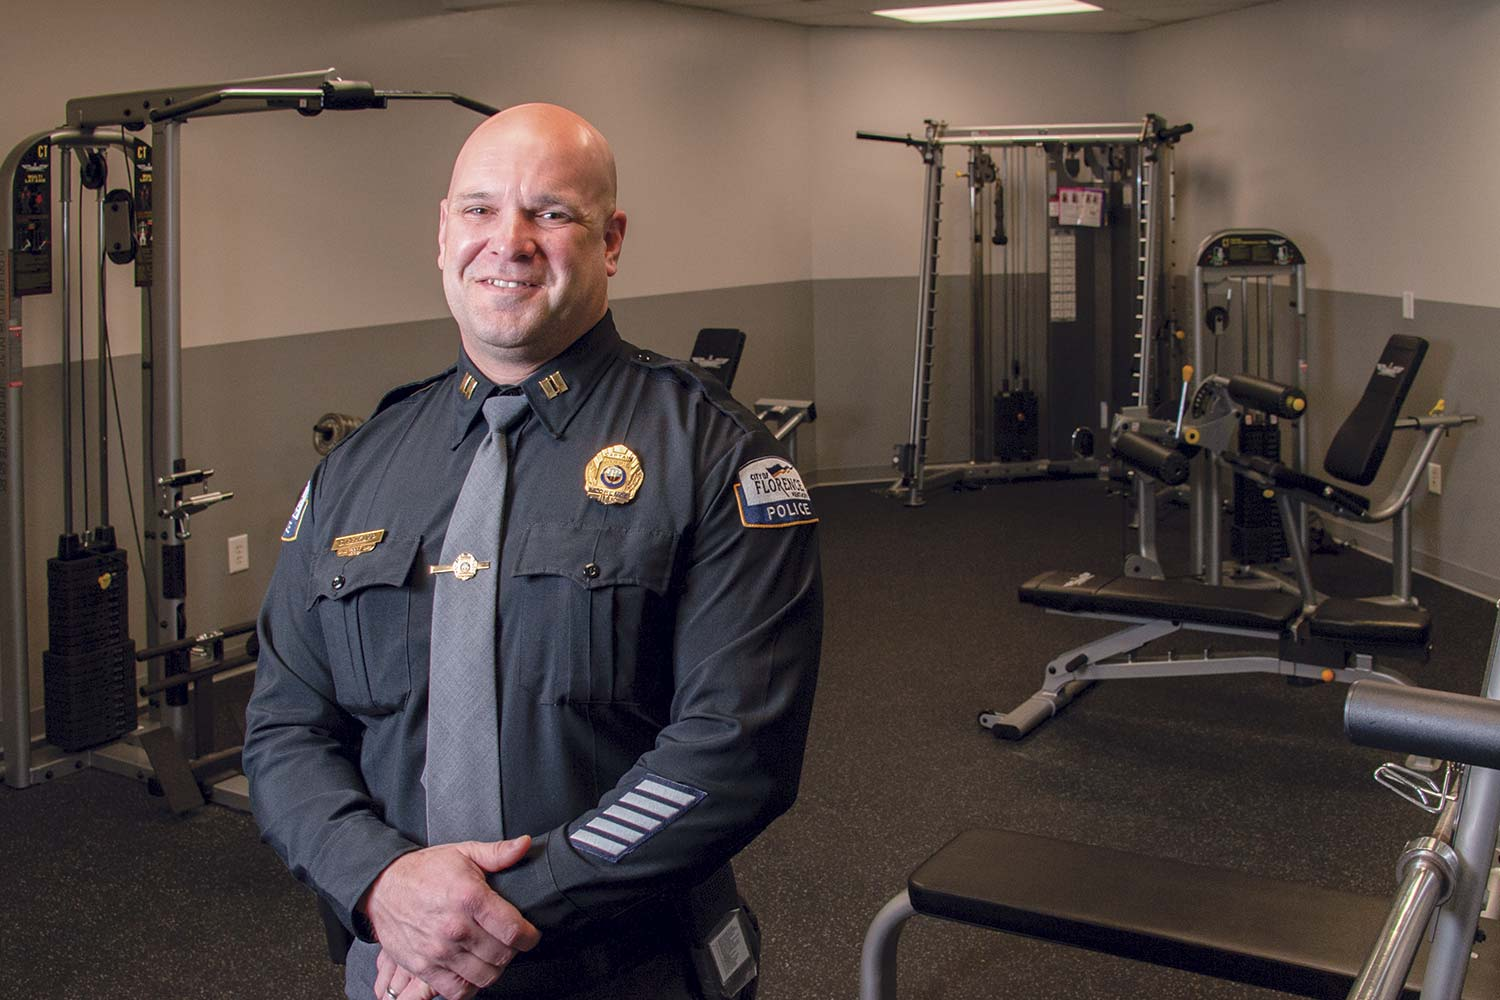 Capt. Greg Rehkamp said the agency's gym is popular among officers with the Florence Police Department. Additionally, he said if officers wish, they can go to an off-site gym, and the city will pay for a portion of the membership fee. (Photo by Jim Robertson)